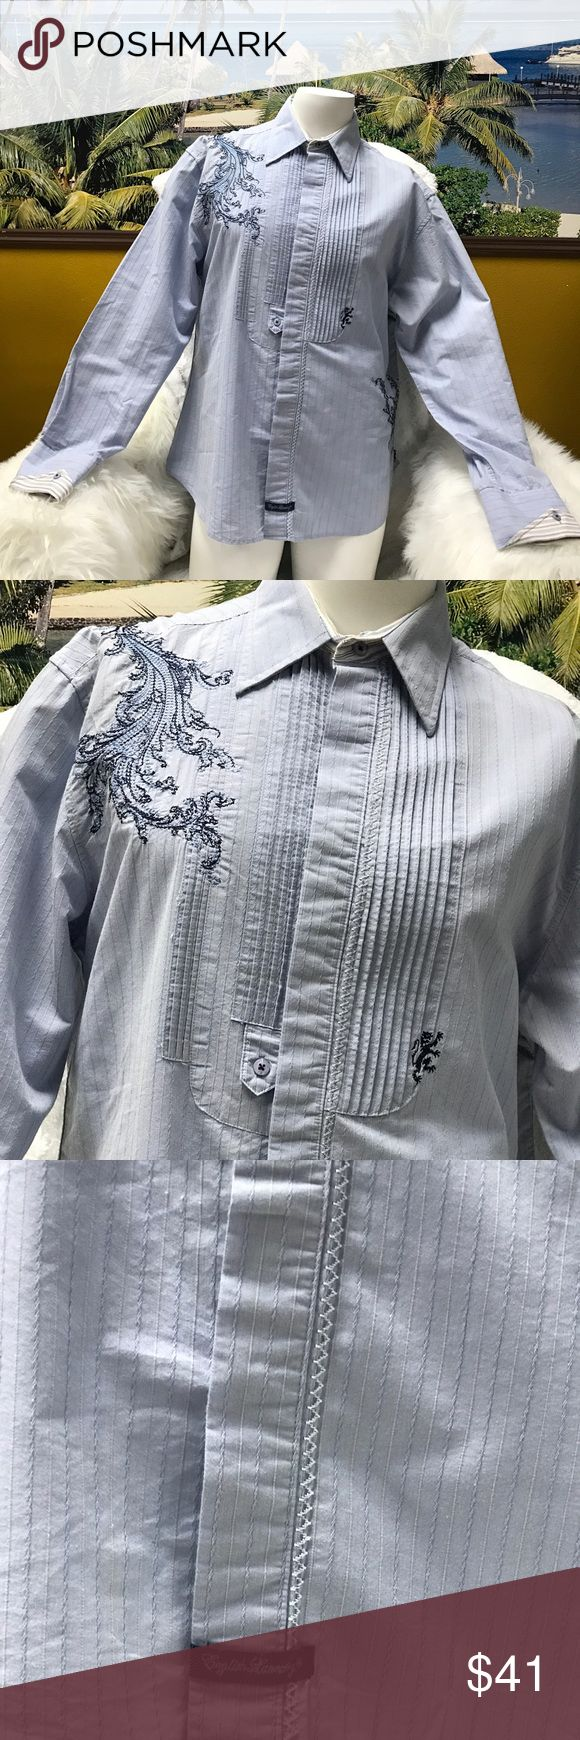 """English Laundry Men Embroidered Dress Shirt Embroidered/textured. Long sleeve, button front. 21"""" shoulder to shoulder, 24"""" armpit to armpit, 25"""" length. English Laundry Shirts Dress Shirts"""